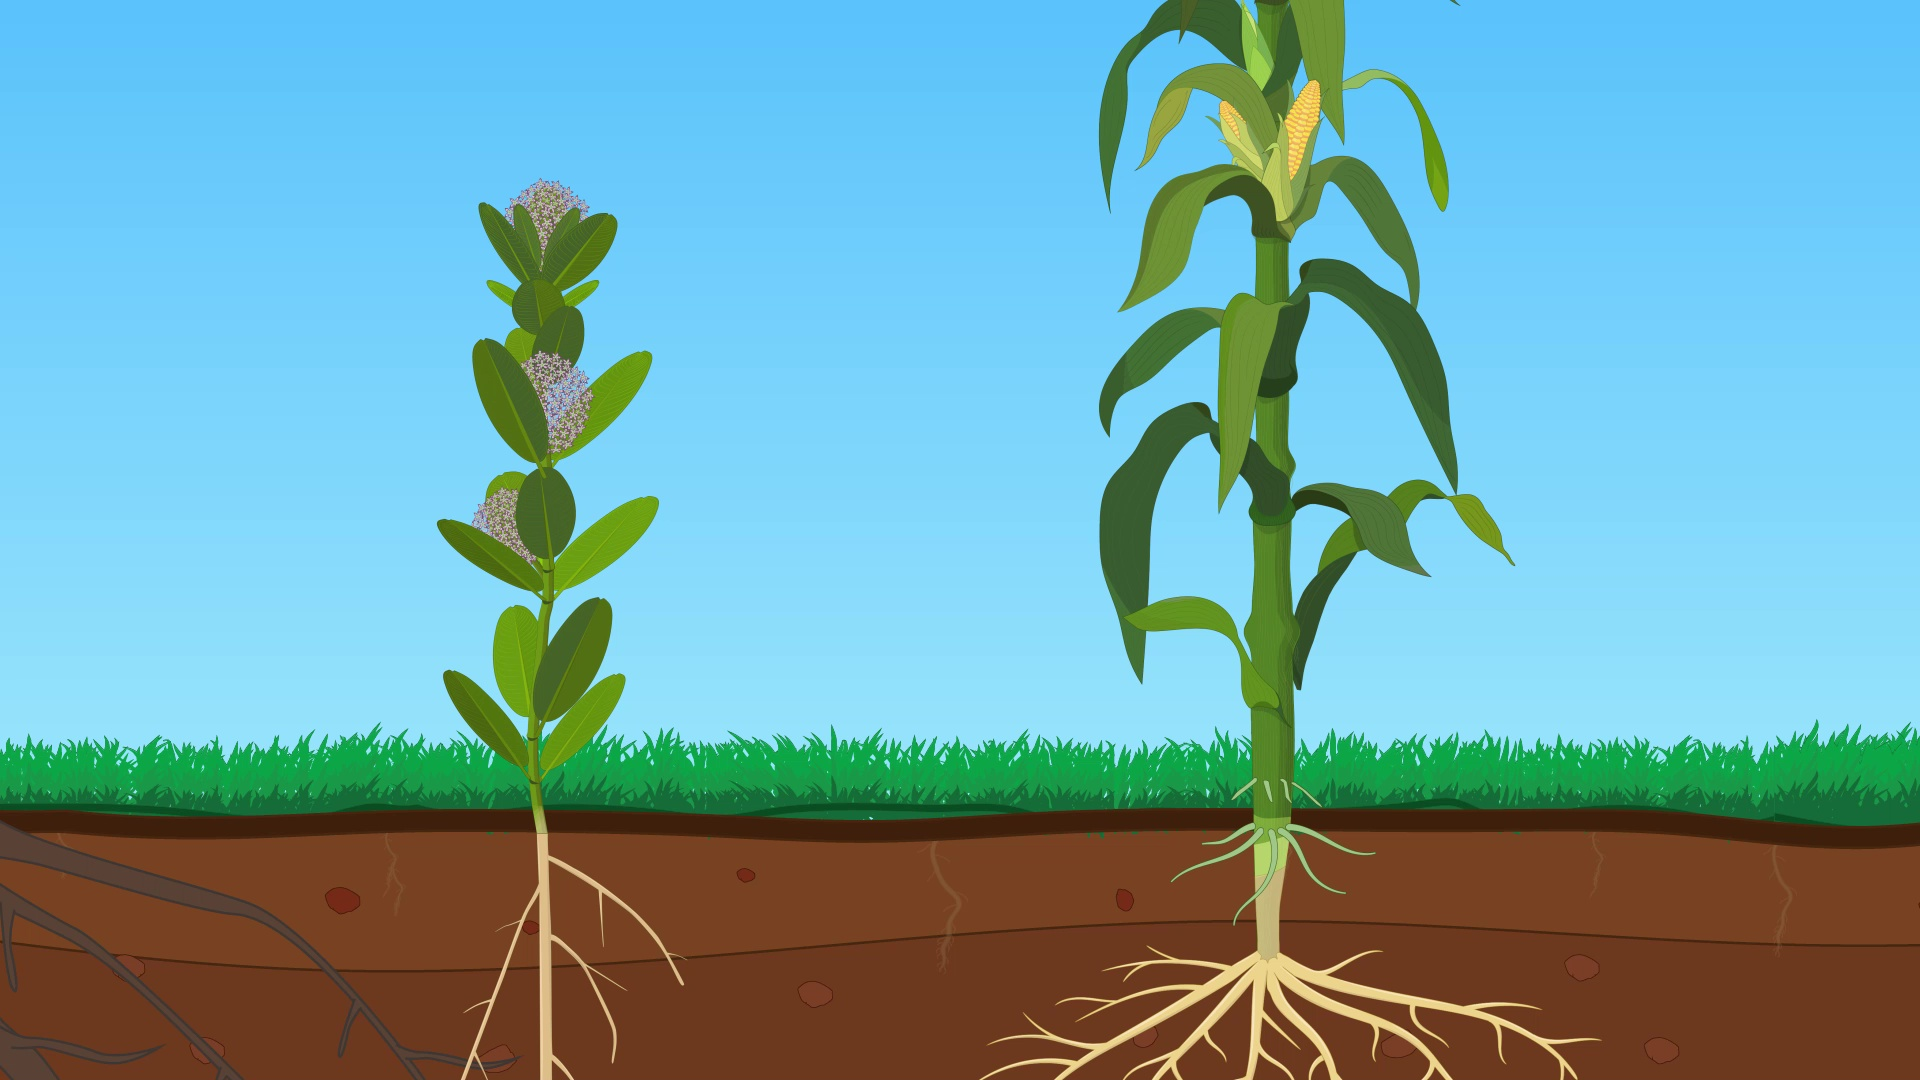 Basic Plant Anatomy: Roots, Stems, and Leaves